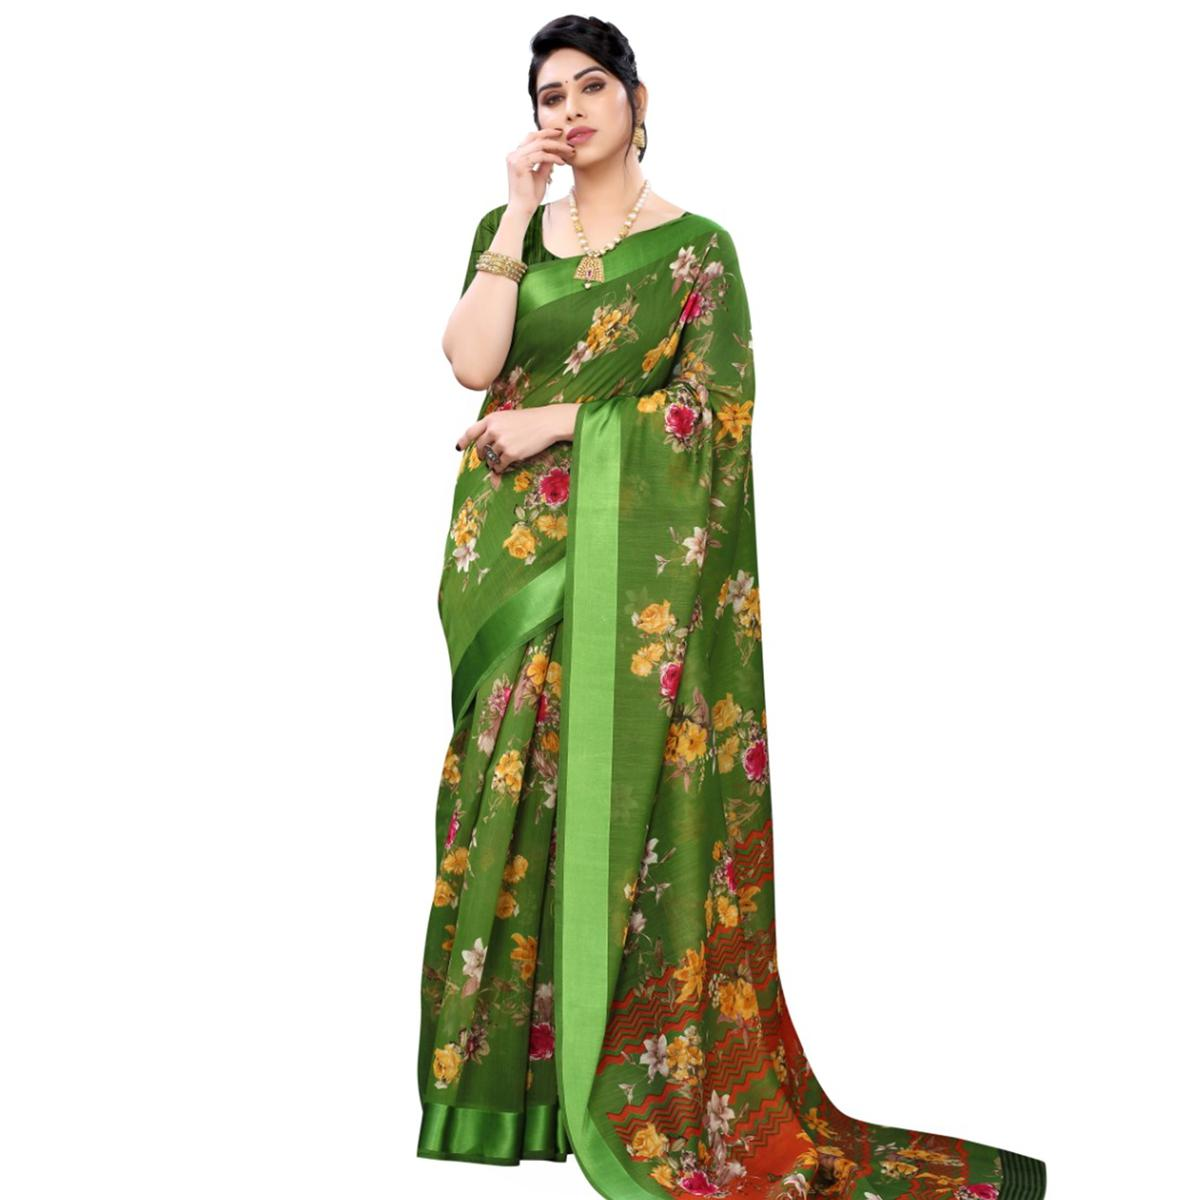 Desirable Green Colored Casual Wear Floral Printed Linen Saree